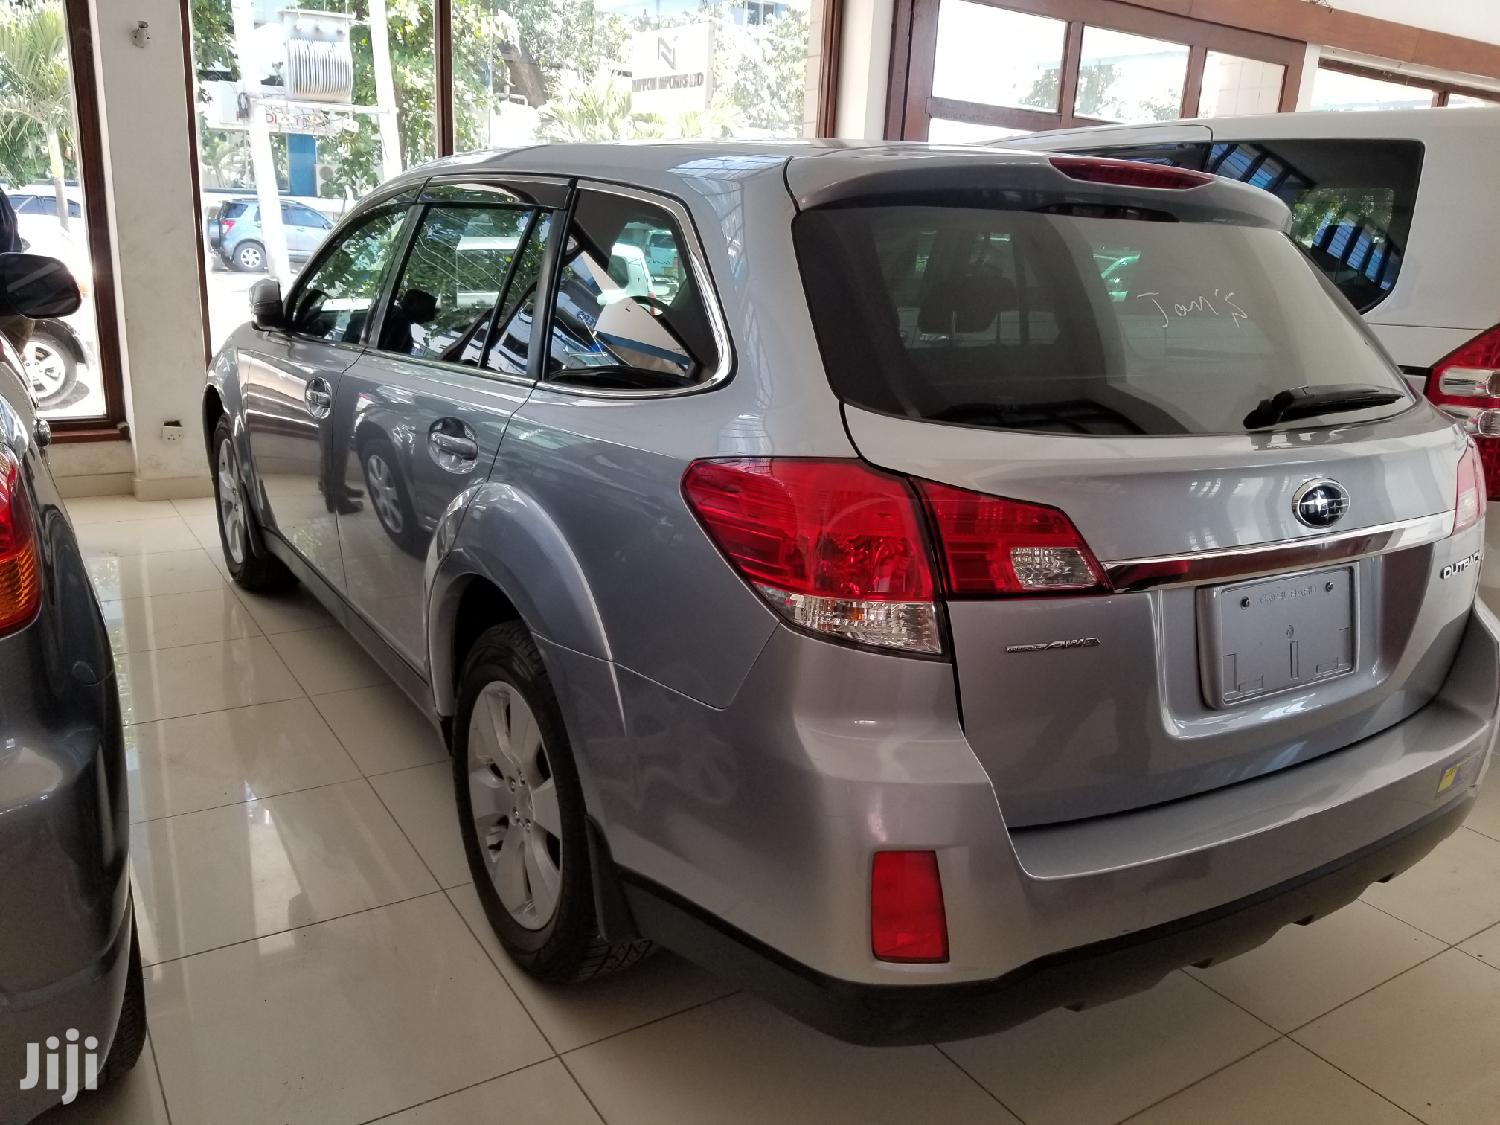 Subaru Outback 2012 2.5i CVT Silver | Cars for sale in Tononoka, Mombasa, Kenya